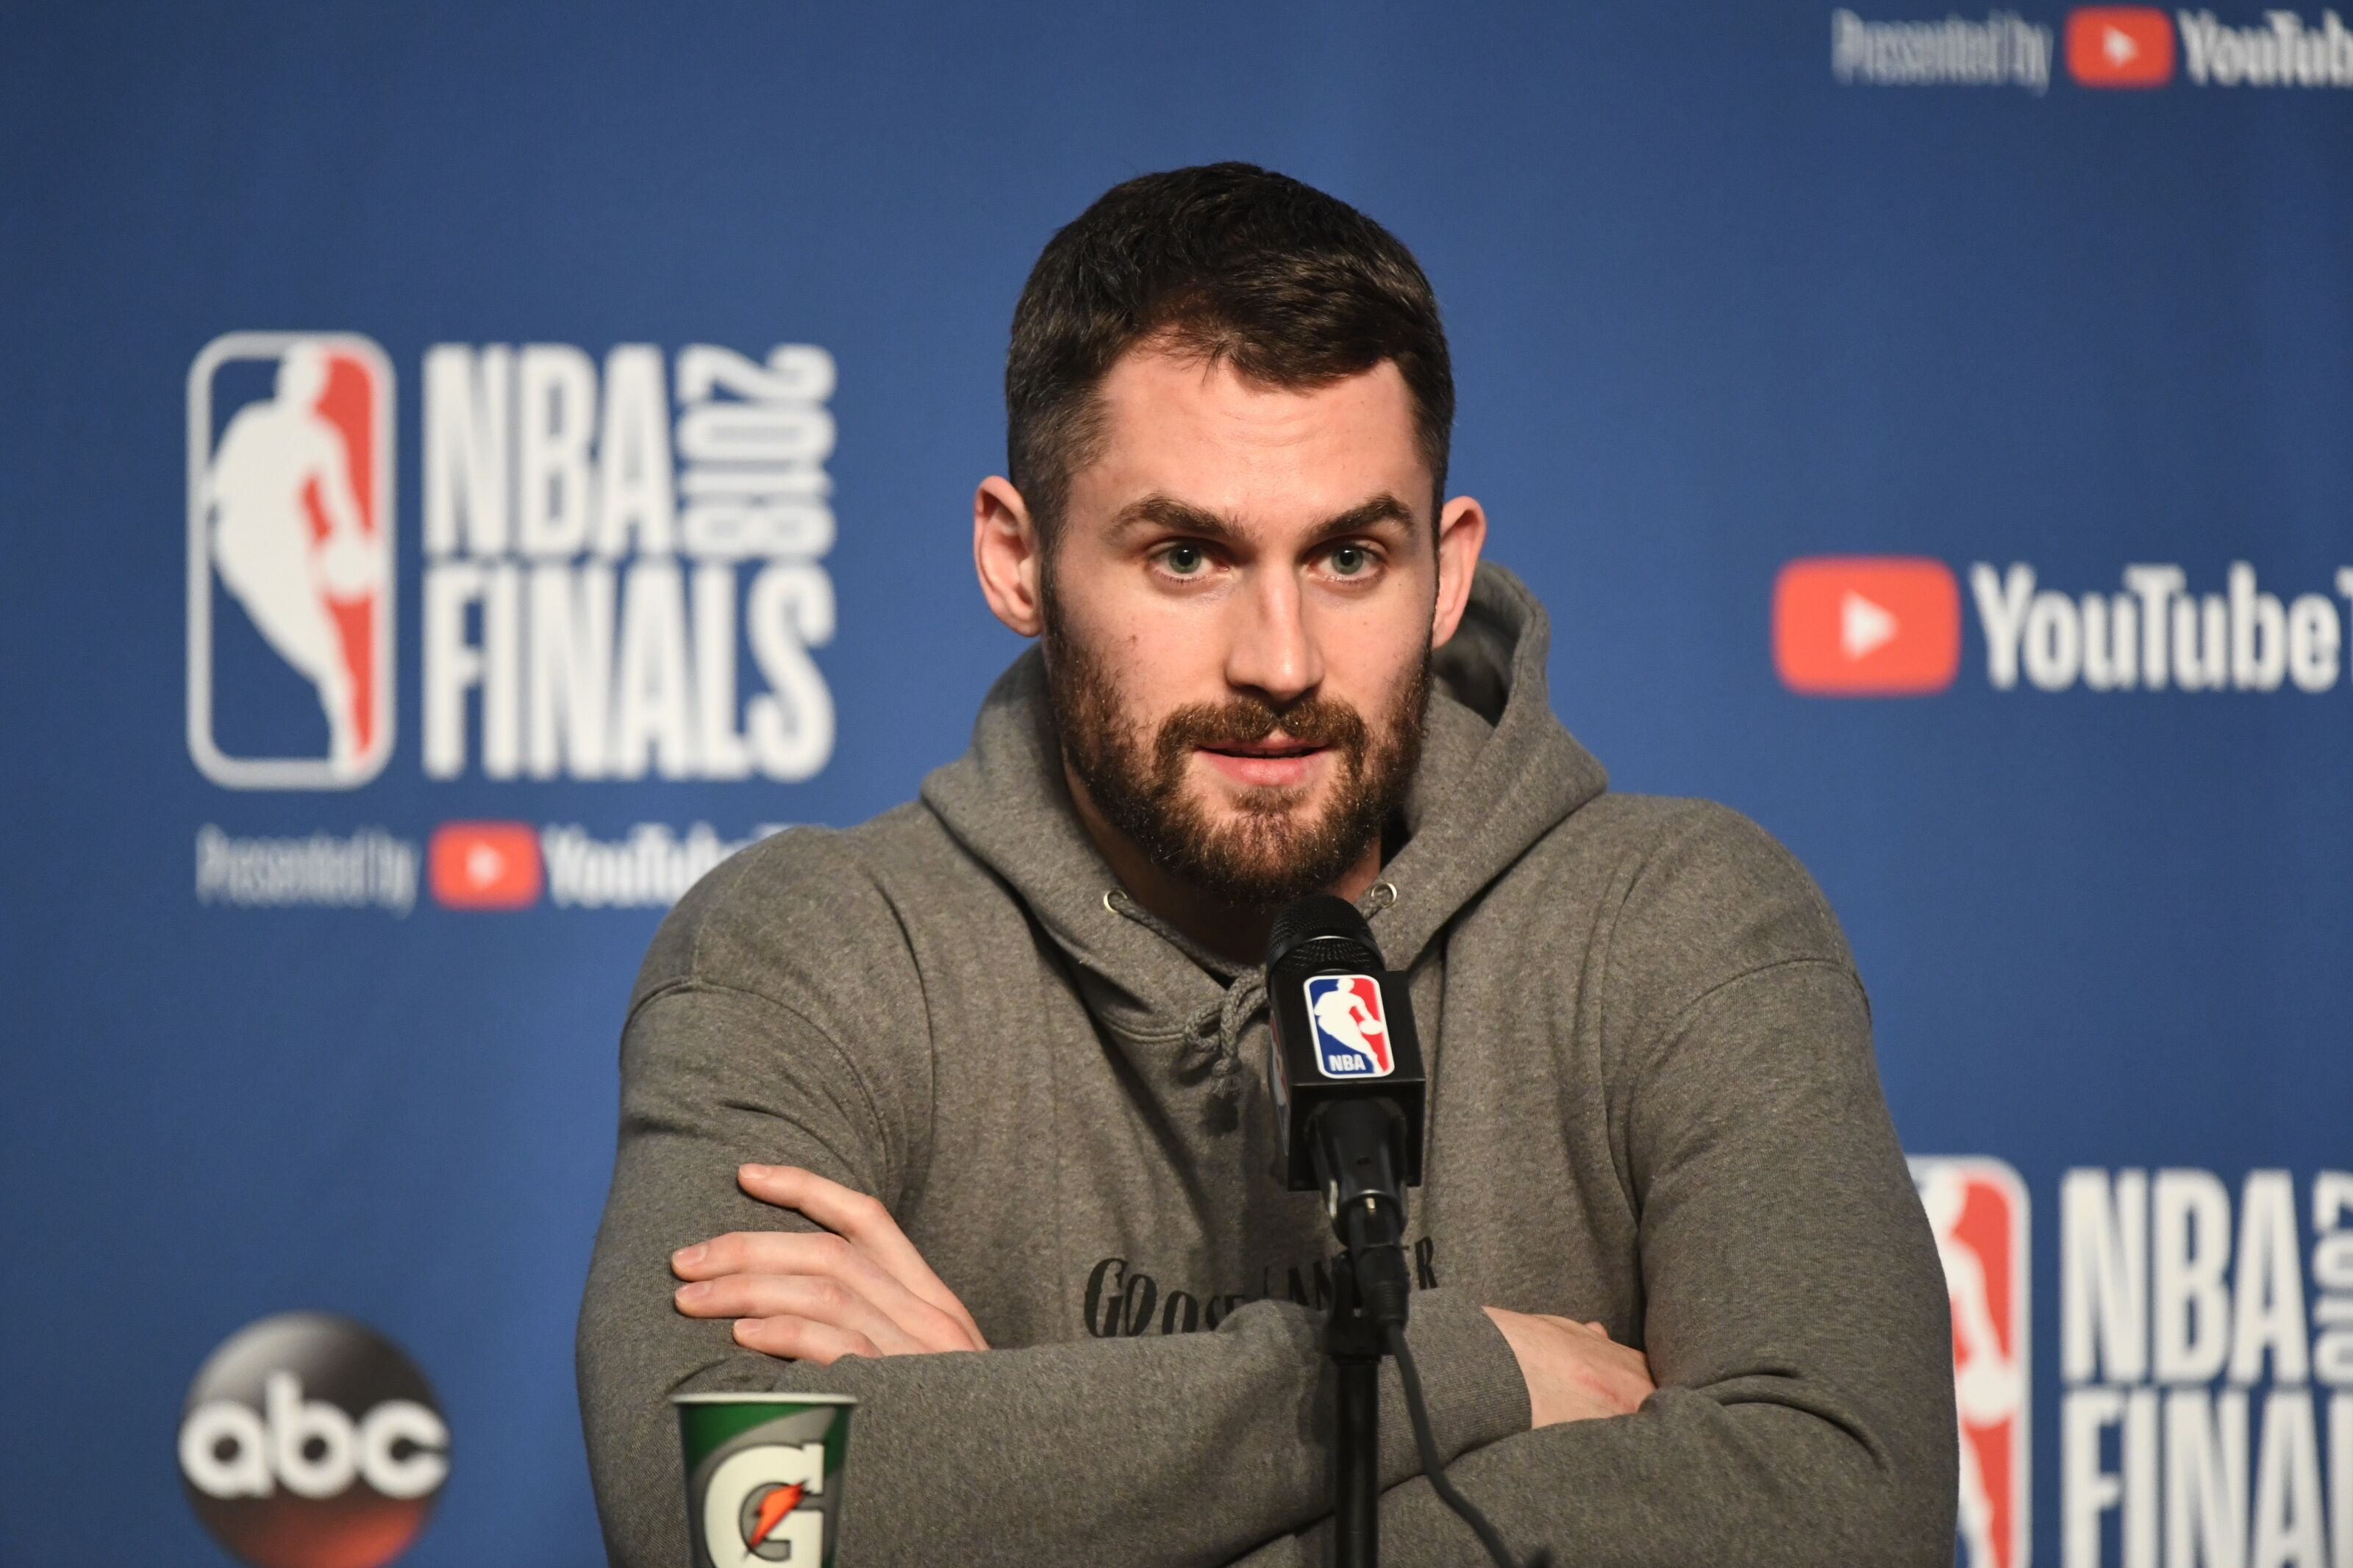 With LeBron James leaving the Cavs, Kevin Love is a ripe trade target